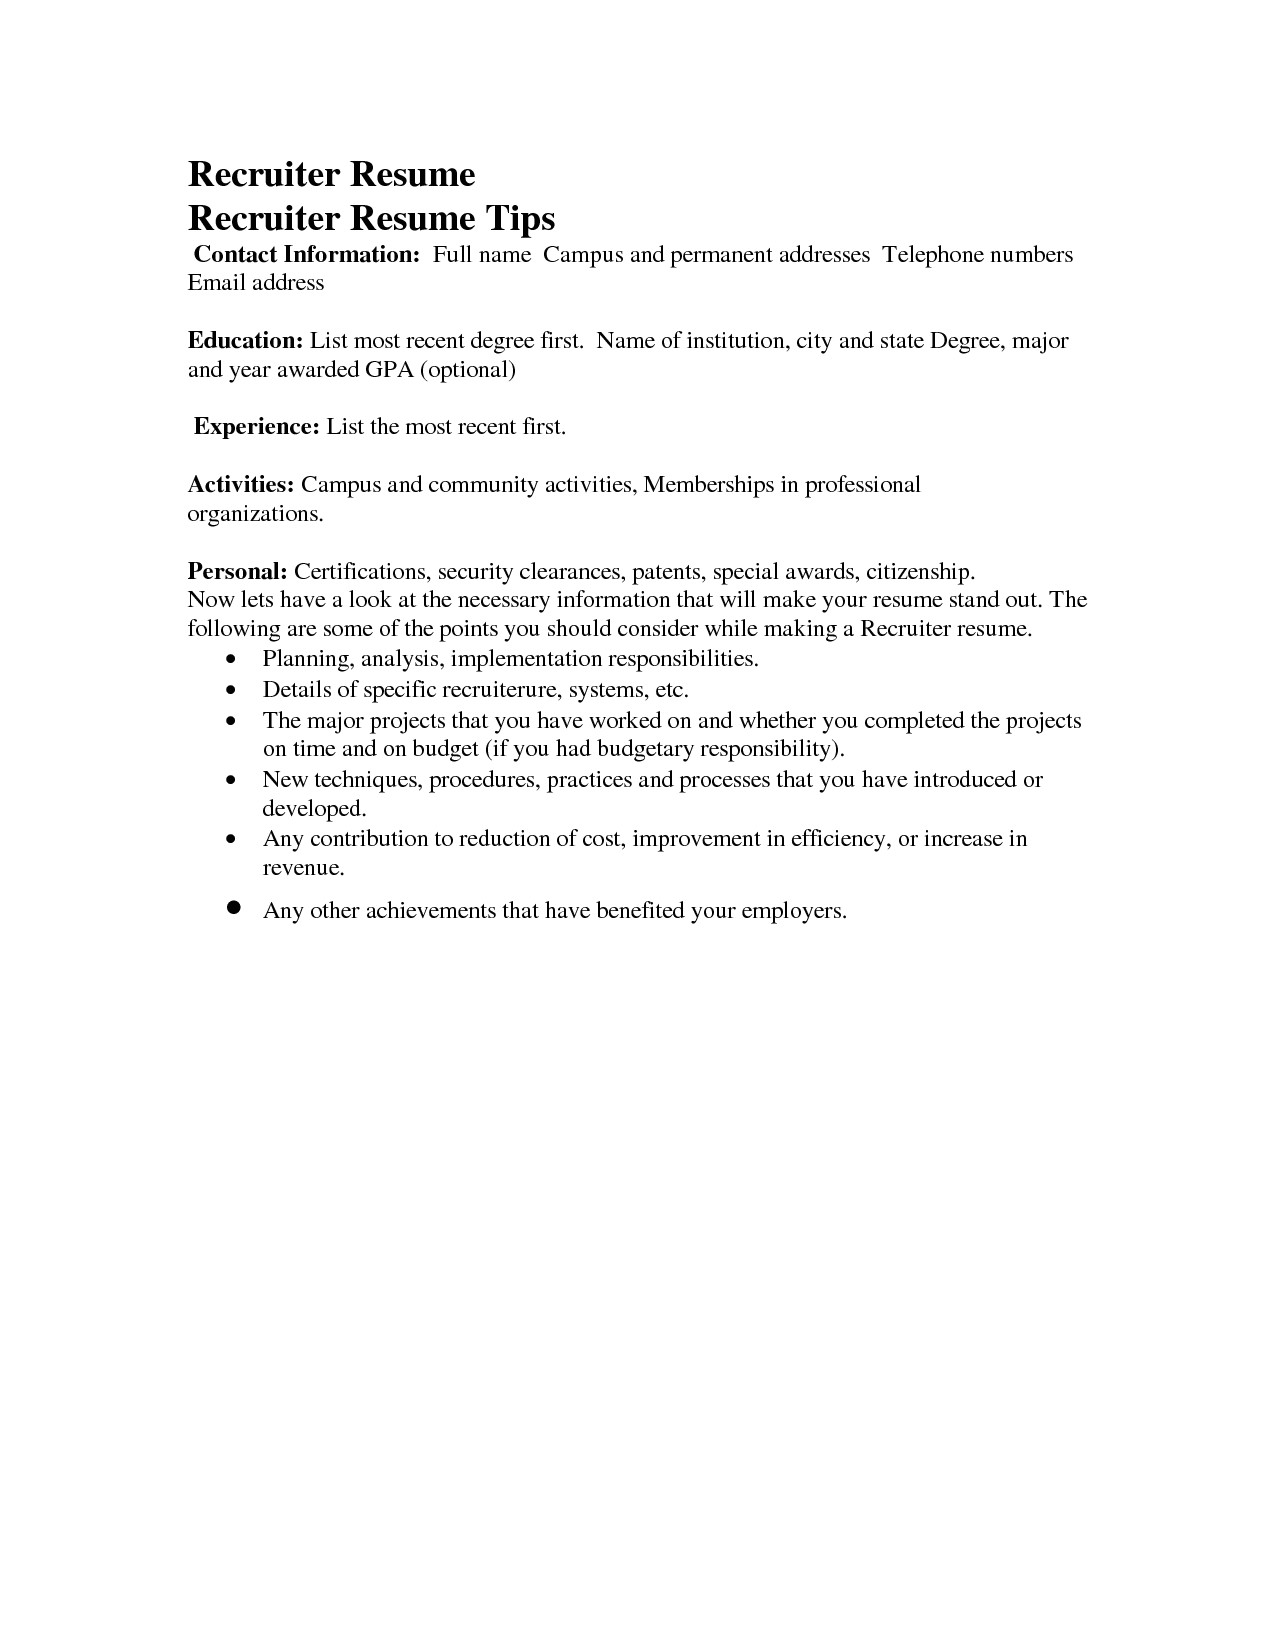 Sample Email to Send Resume to Recruiter Sample Email to Send Resume to Recruiter Cover Letter